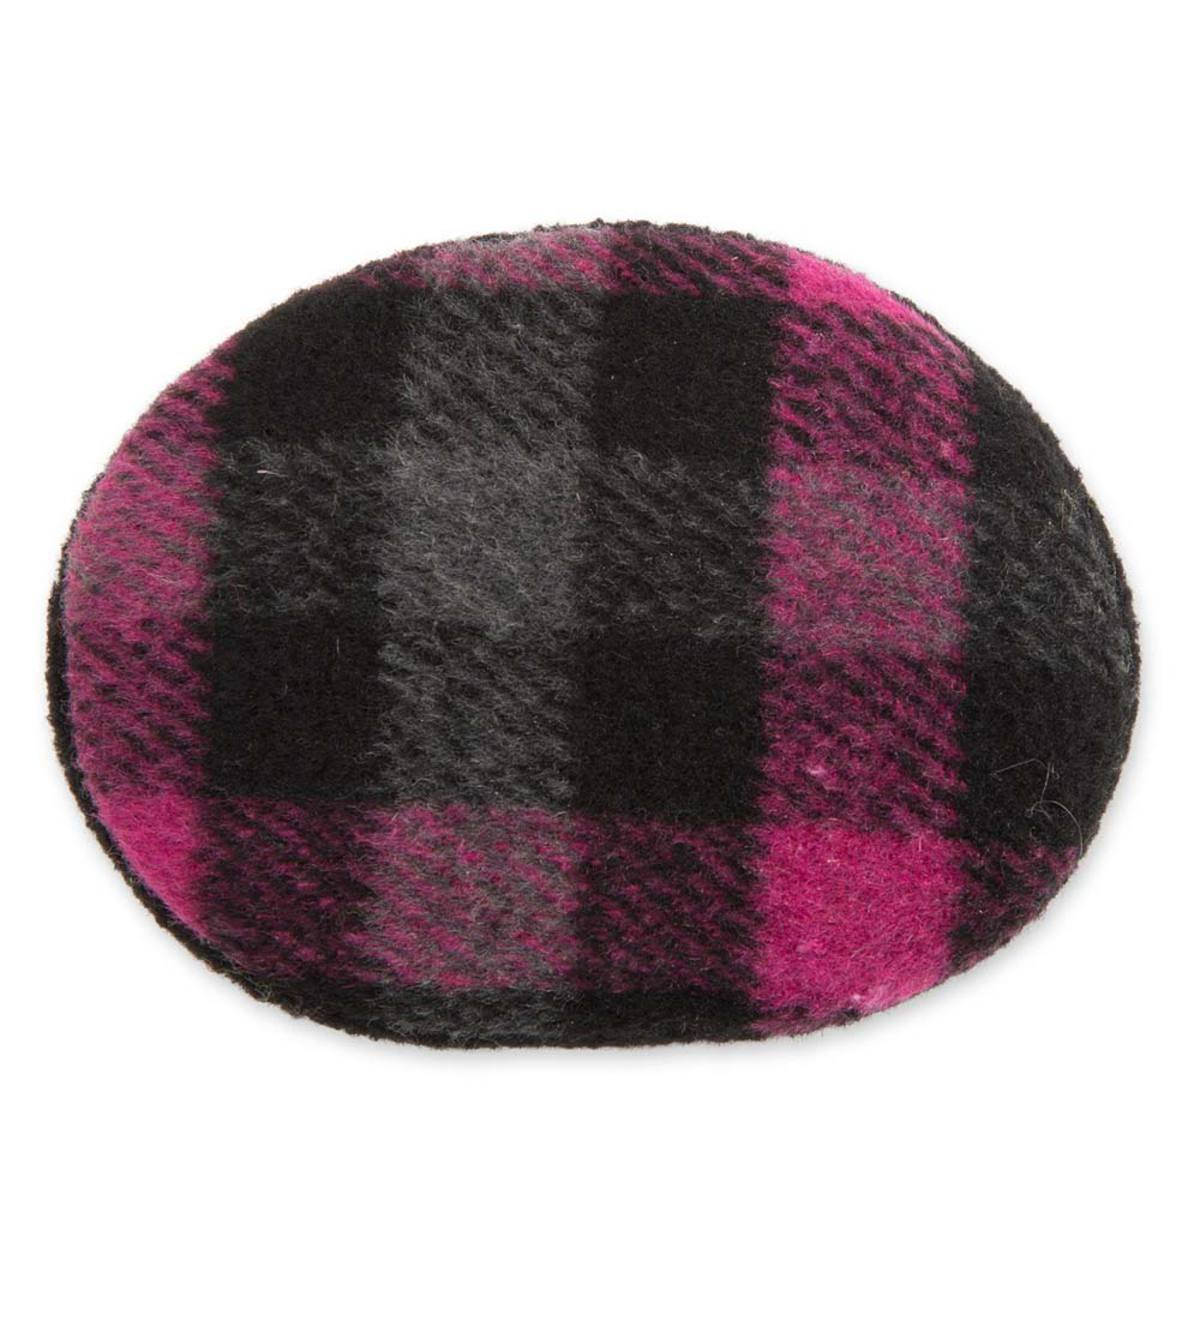 Lightweight Bandless Polyester-Fleece Earbags - Black/Pink Plaid - Large